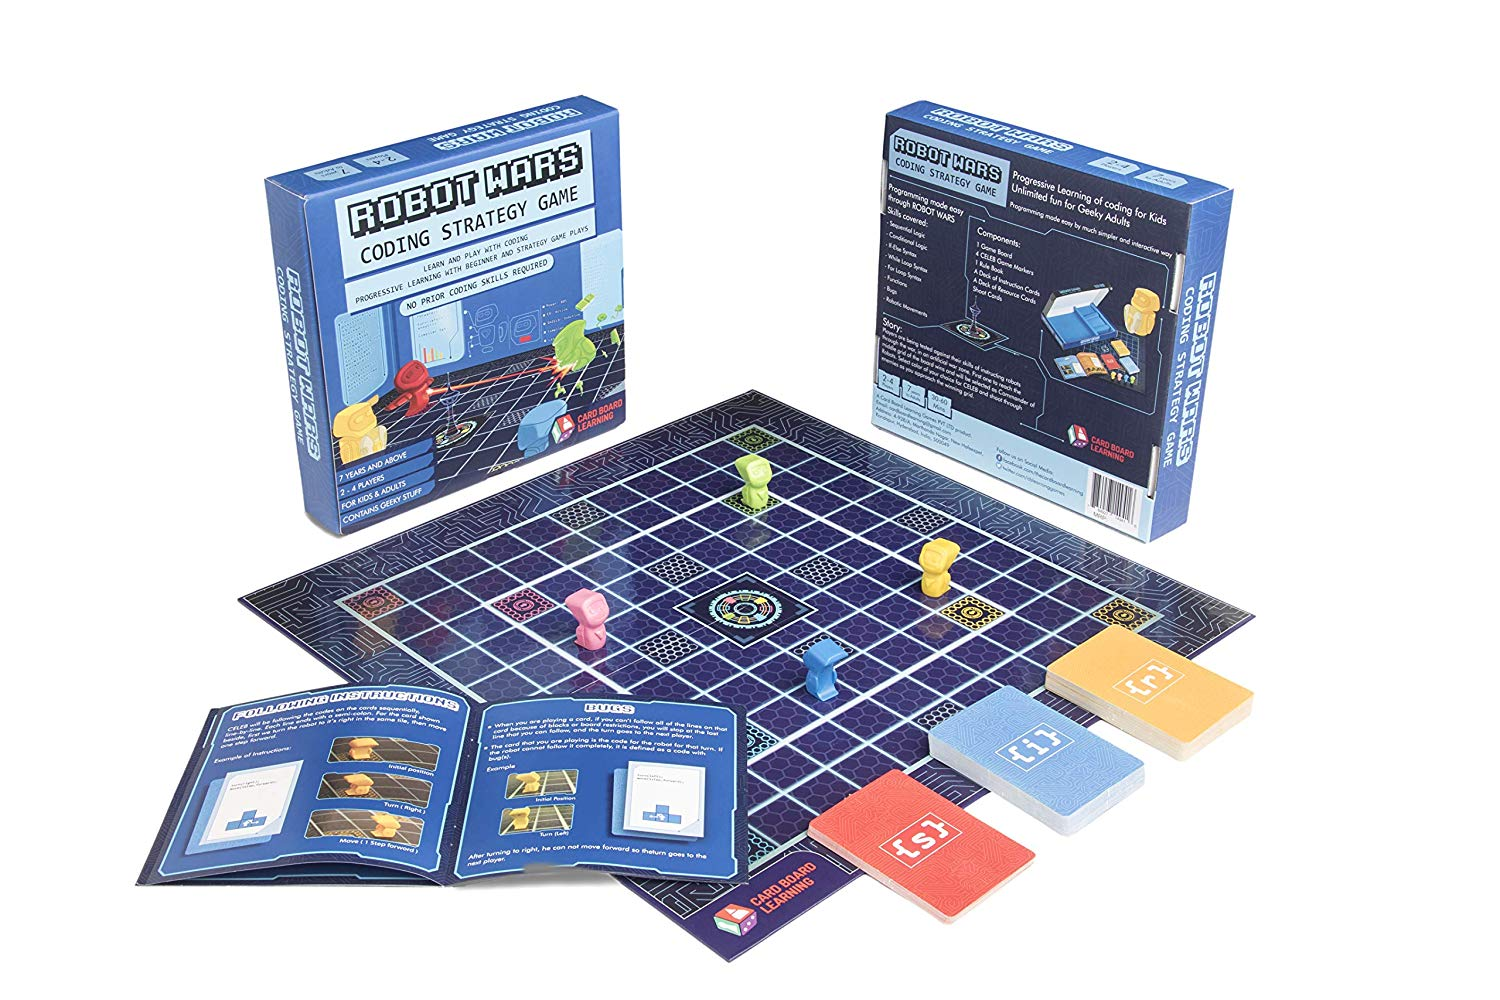 robot wars coding board game